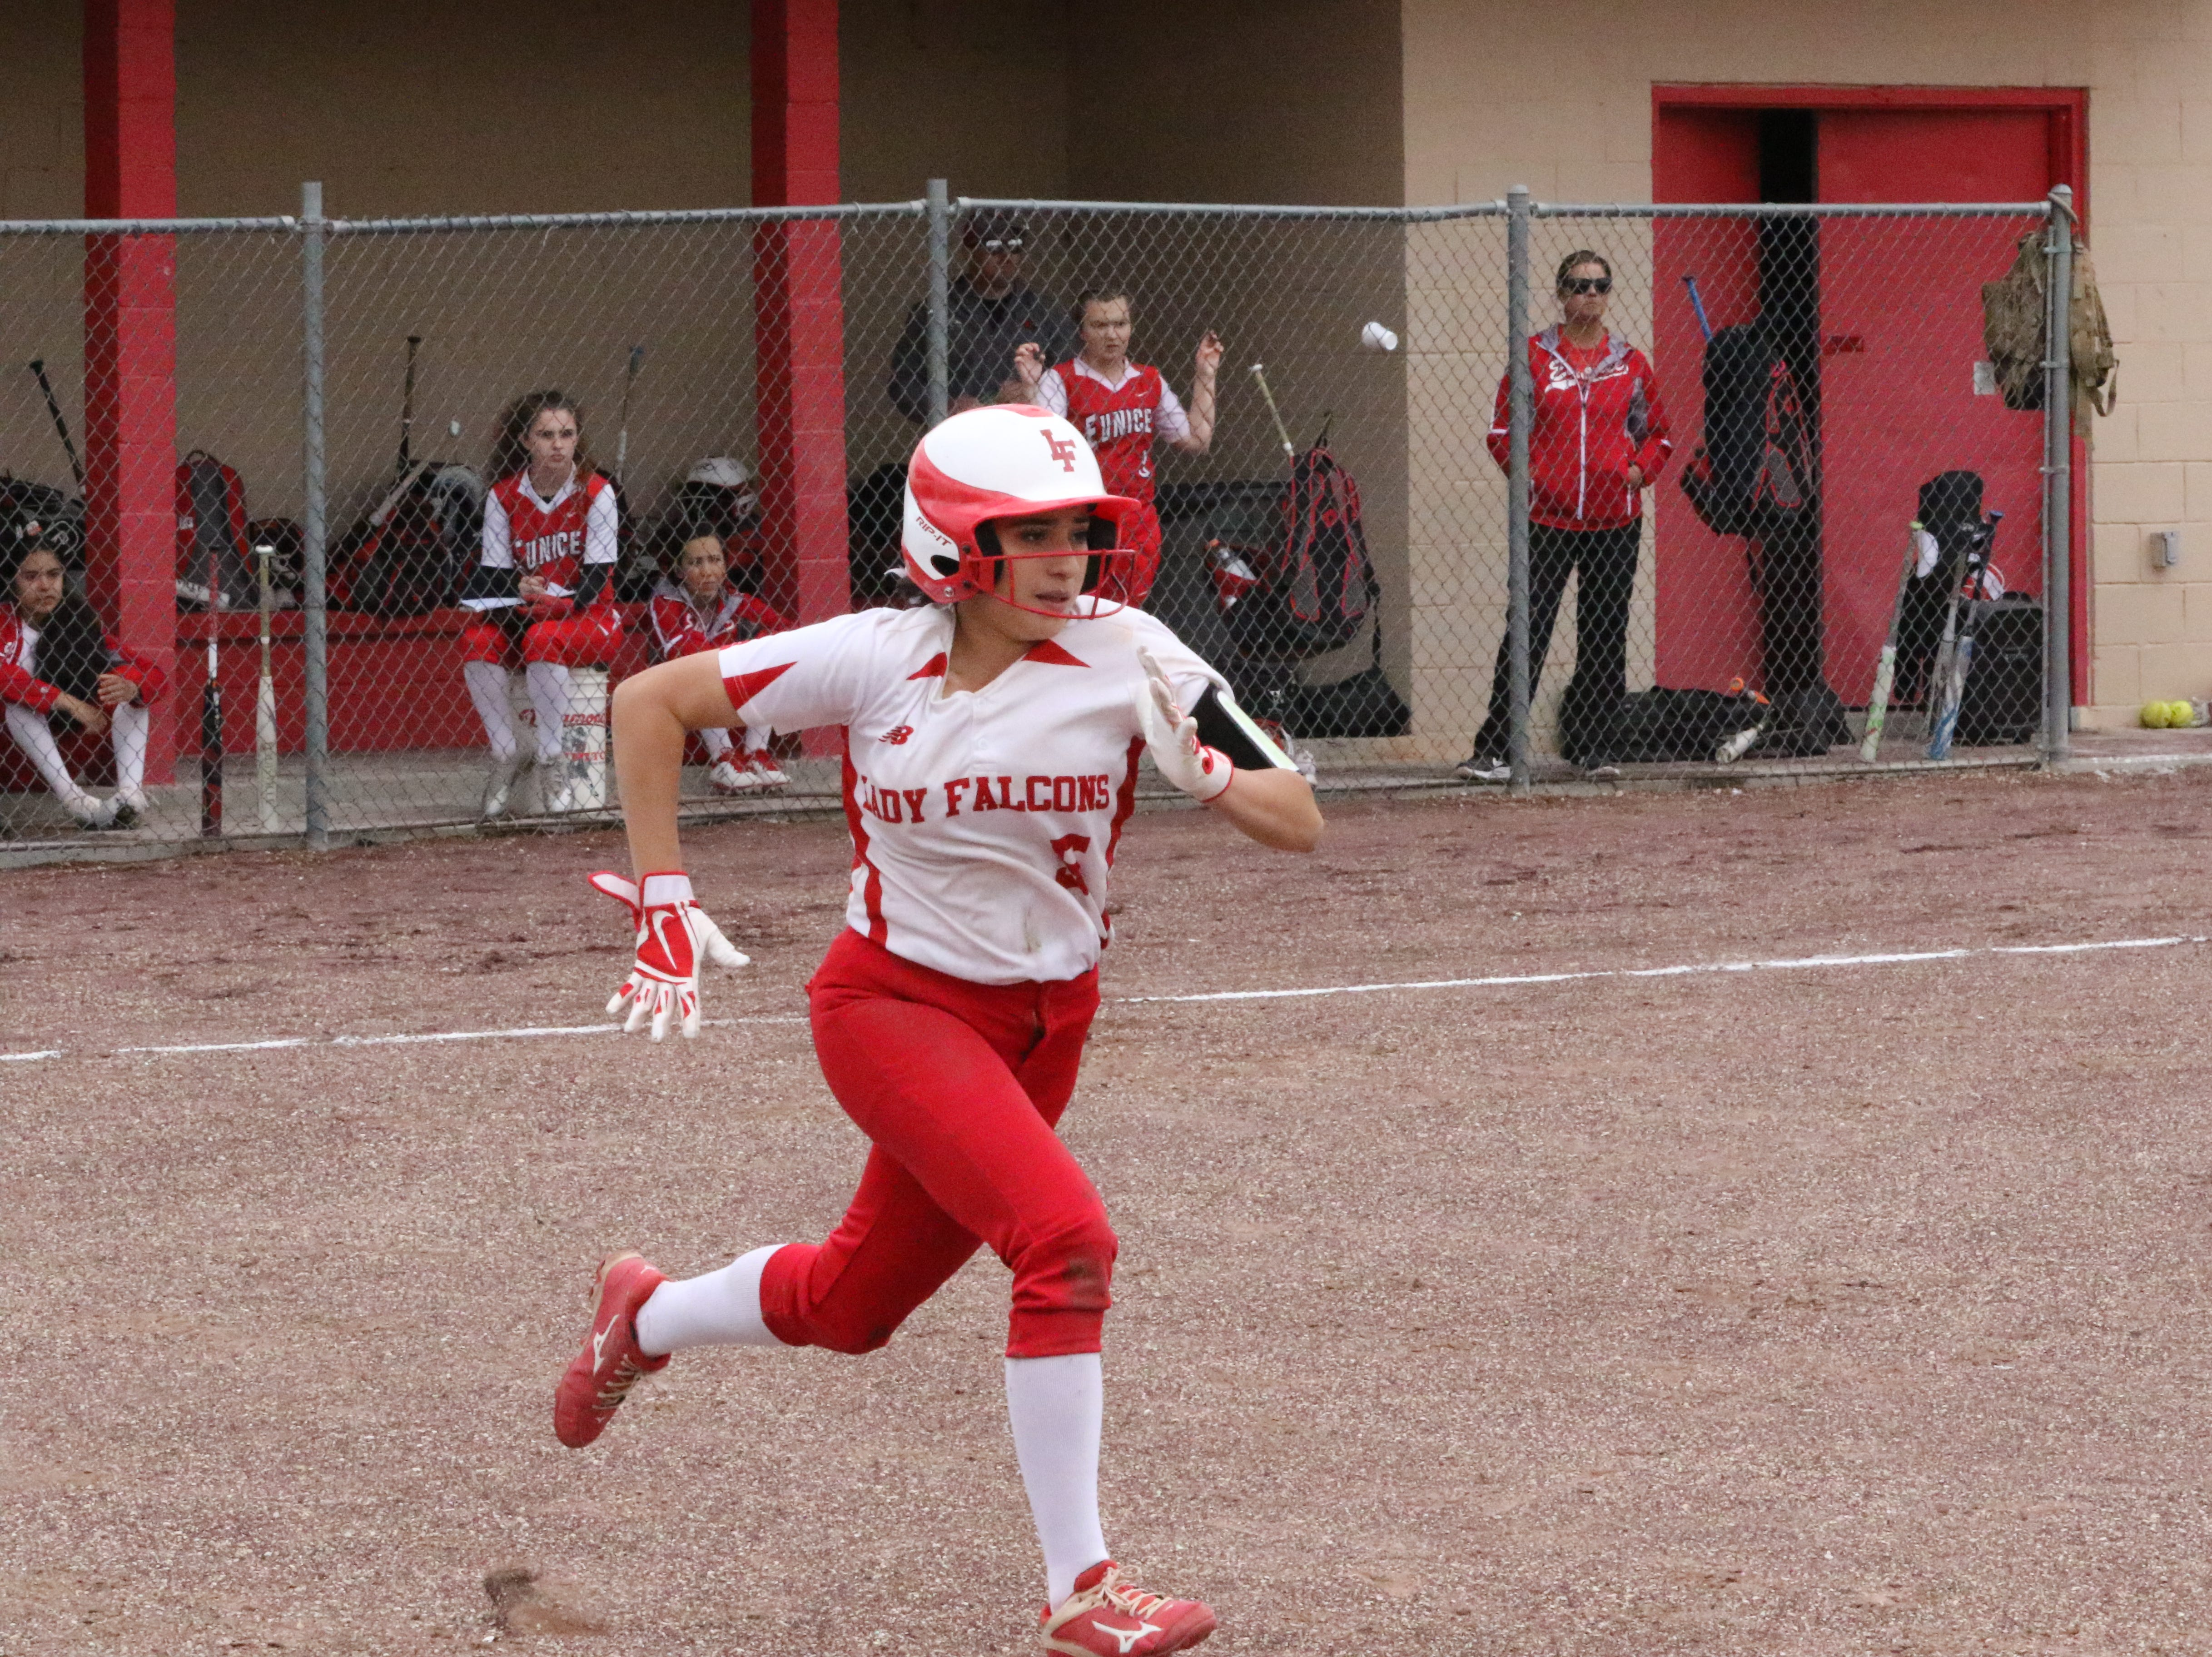 Anyssay Rodriguez runs to first base during the first game of Saturday's doubleheader. Eunice won Game 1, 13-12 and Loving won Game 2, 16-6.